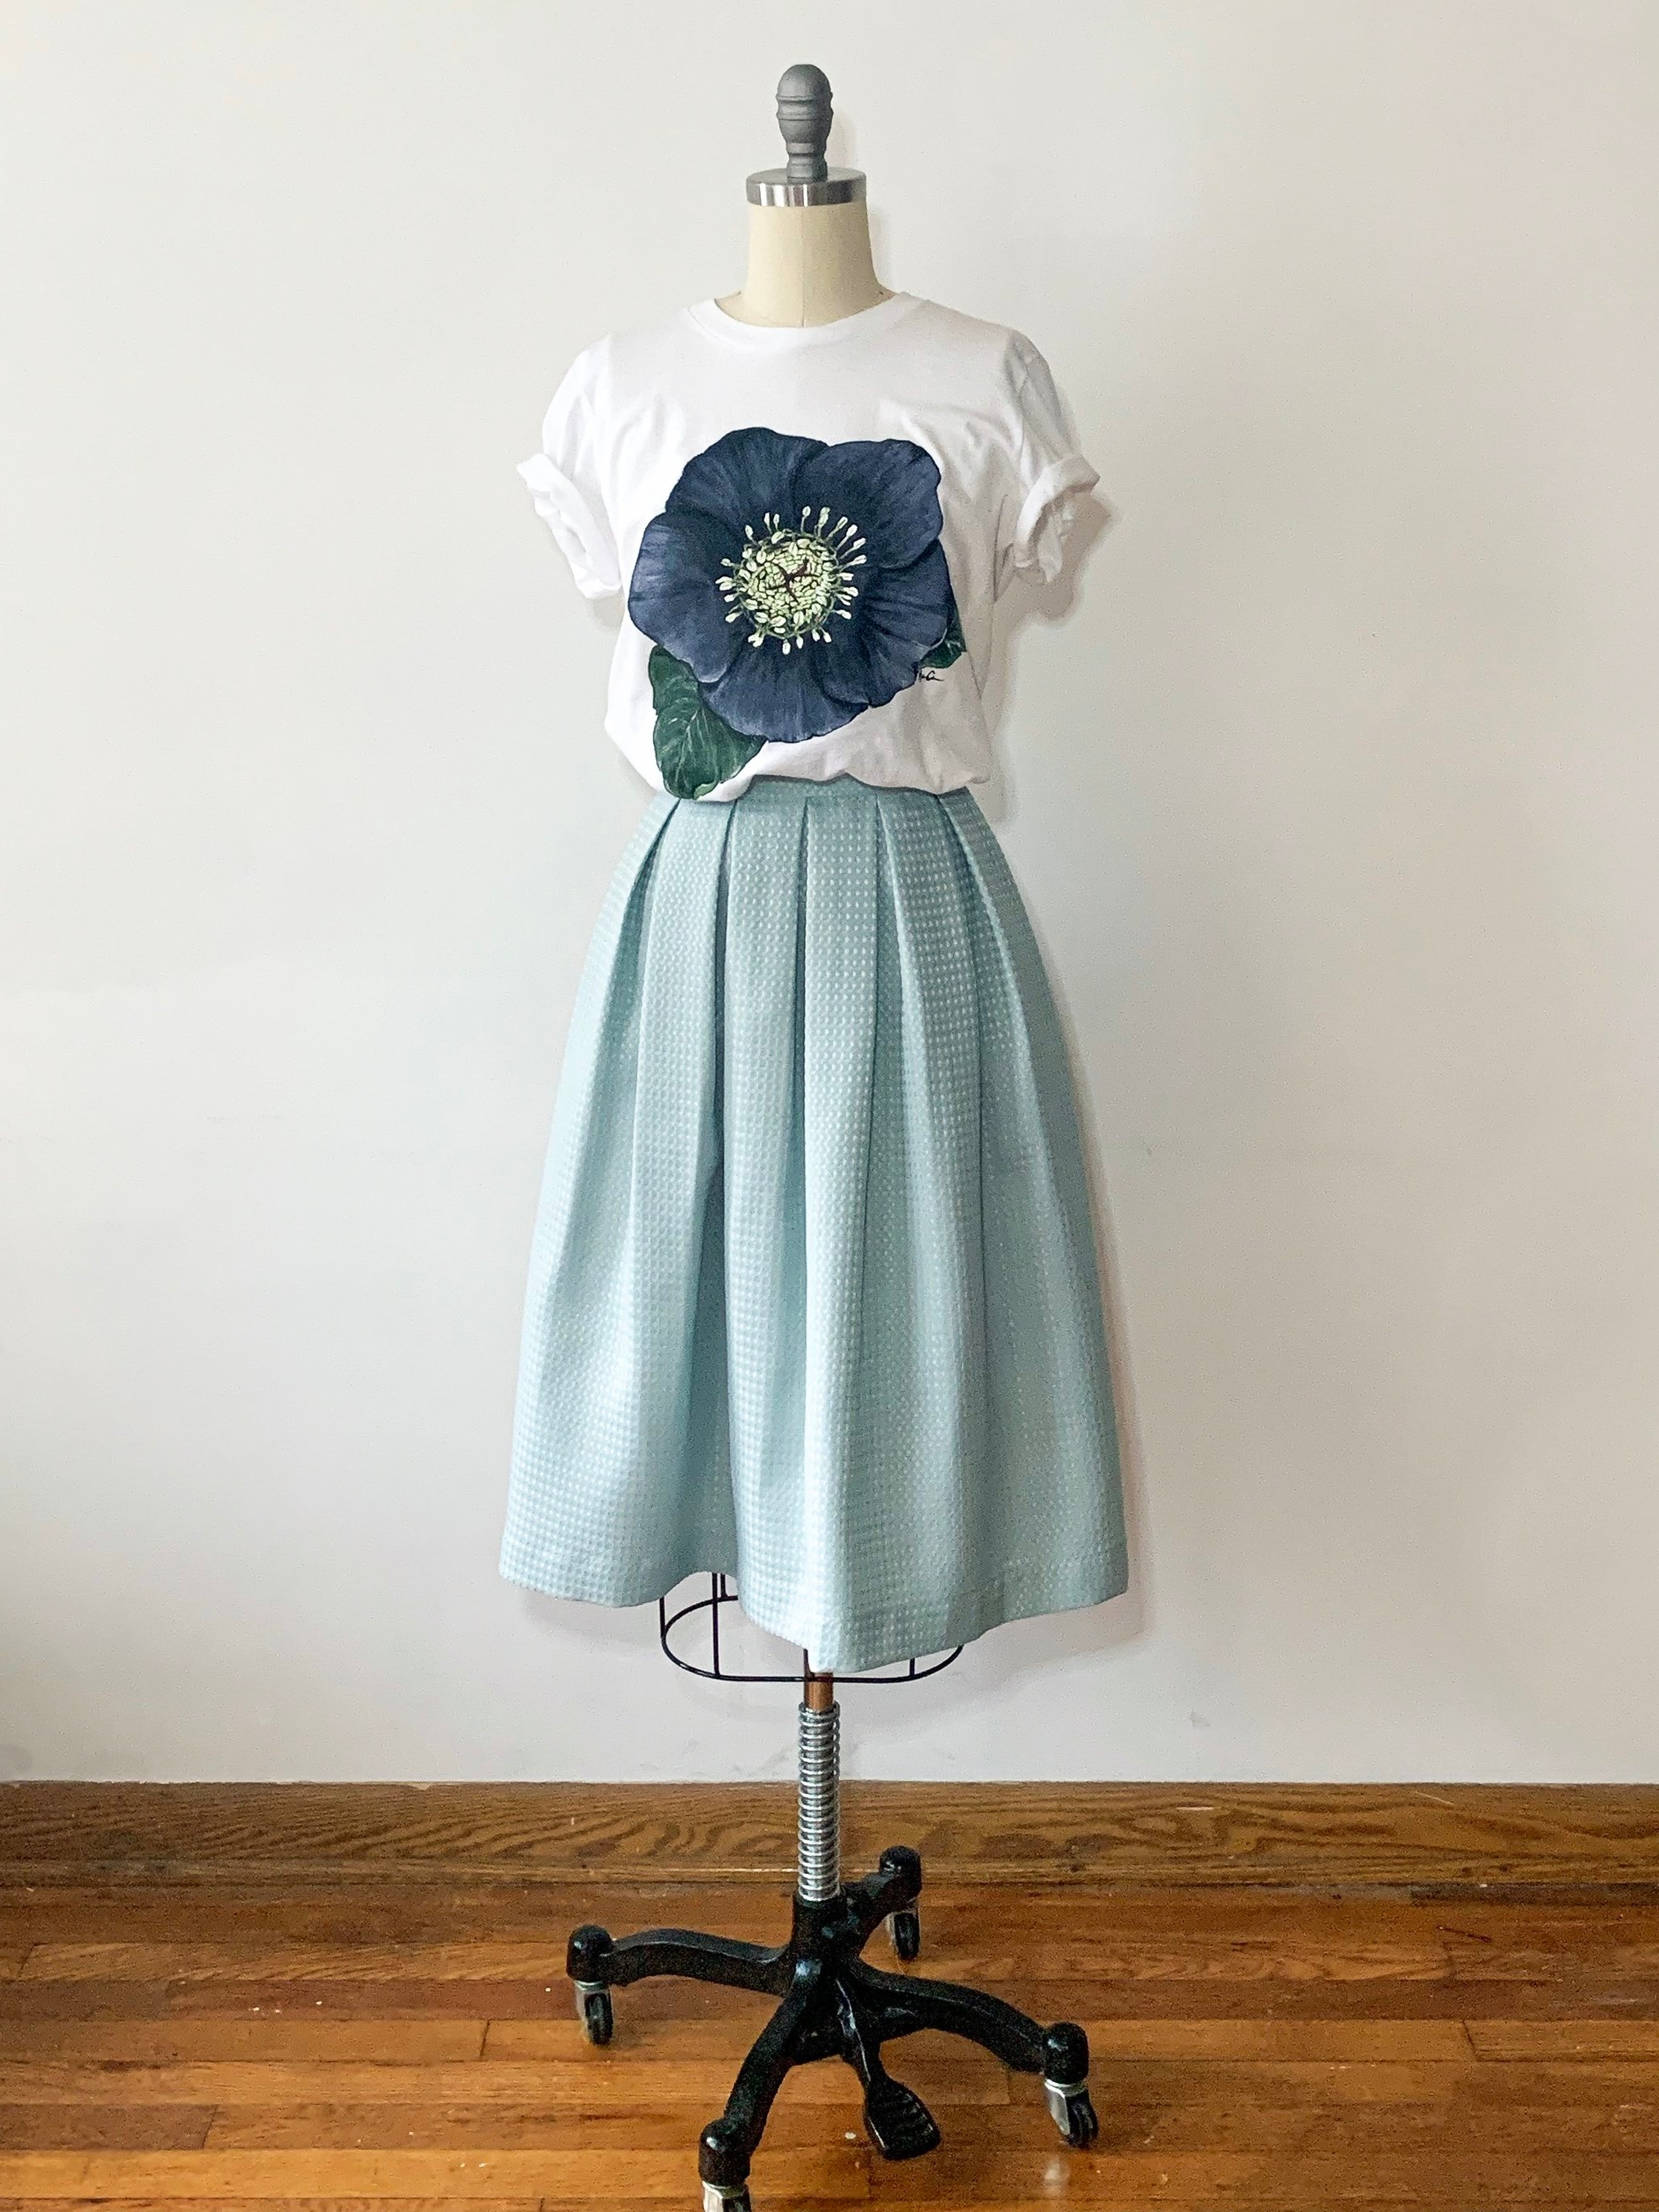 repurposed second-hand textiles - i find beautiful(and sometimes unexpected) second-hand textiles and create ready to wear pieces like this once shower curtain turned skirt